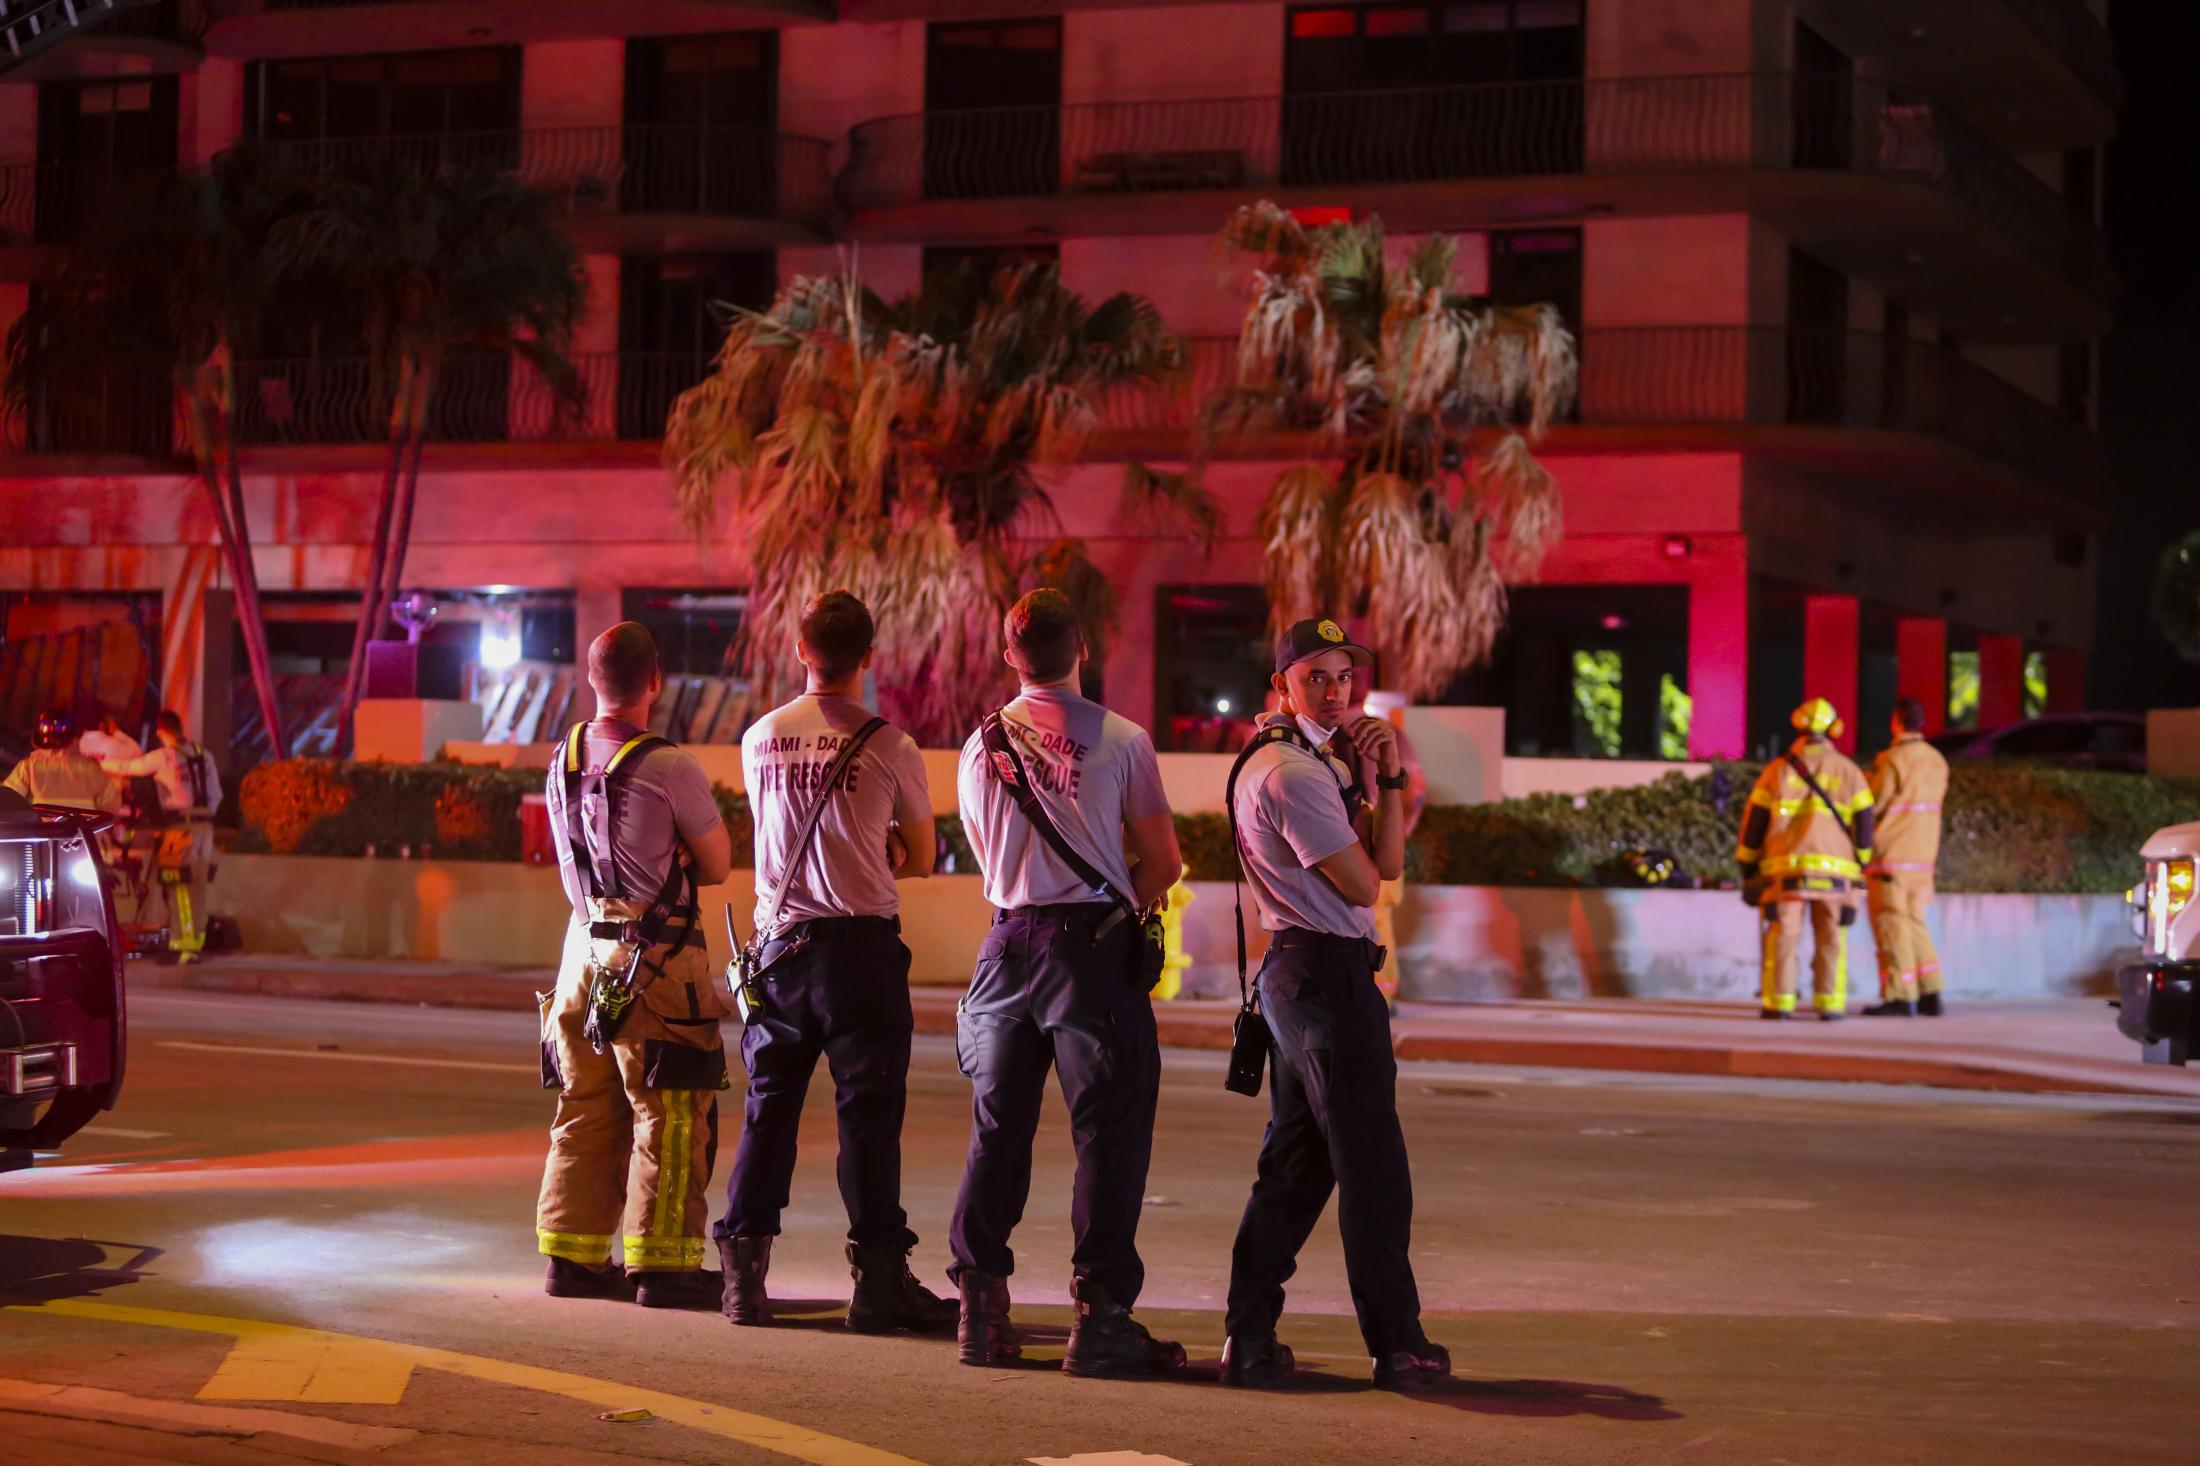 Rescue workers gather on the street during a building partially collapse rescue operation in Surfside, Florida, U.S., on Thursday, June 24, 2021. Photographer: Eva Marie Uzcategui/Bloomberg in Surfside, Florida, U.S., on Thursday, June 24, 2021. Photographer: Eva Marie Uzcategui